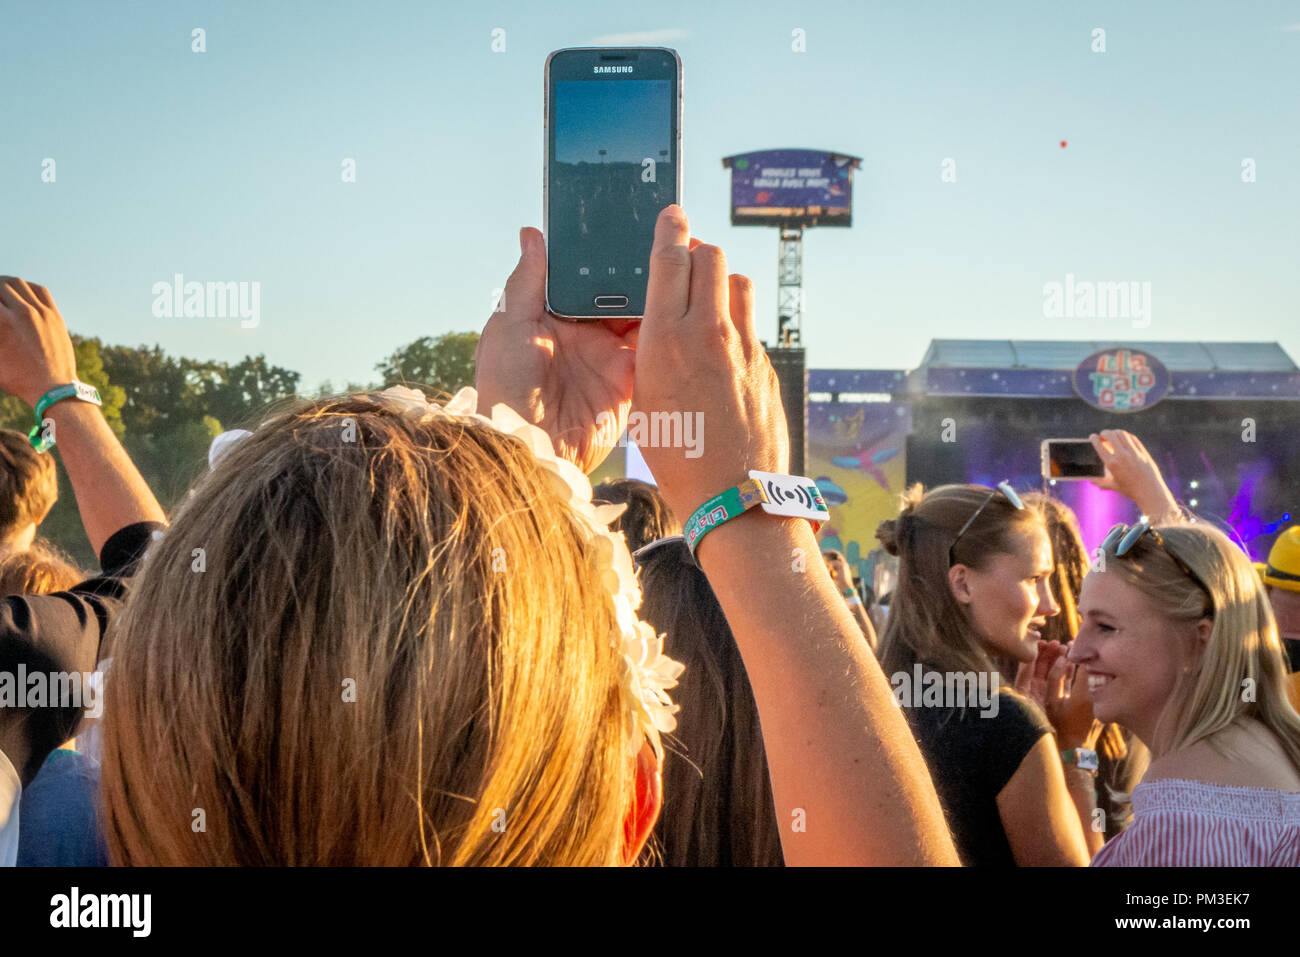 Lollapalooza Berlin 2018 - Stock Image